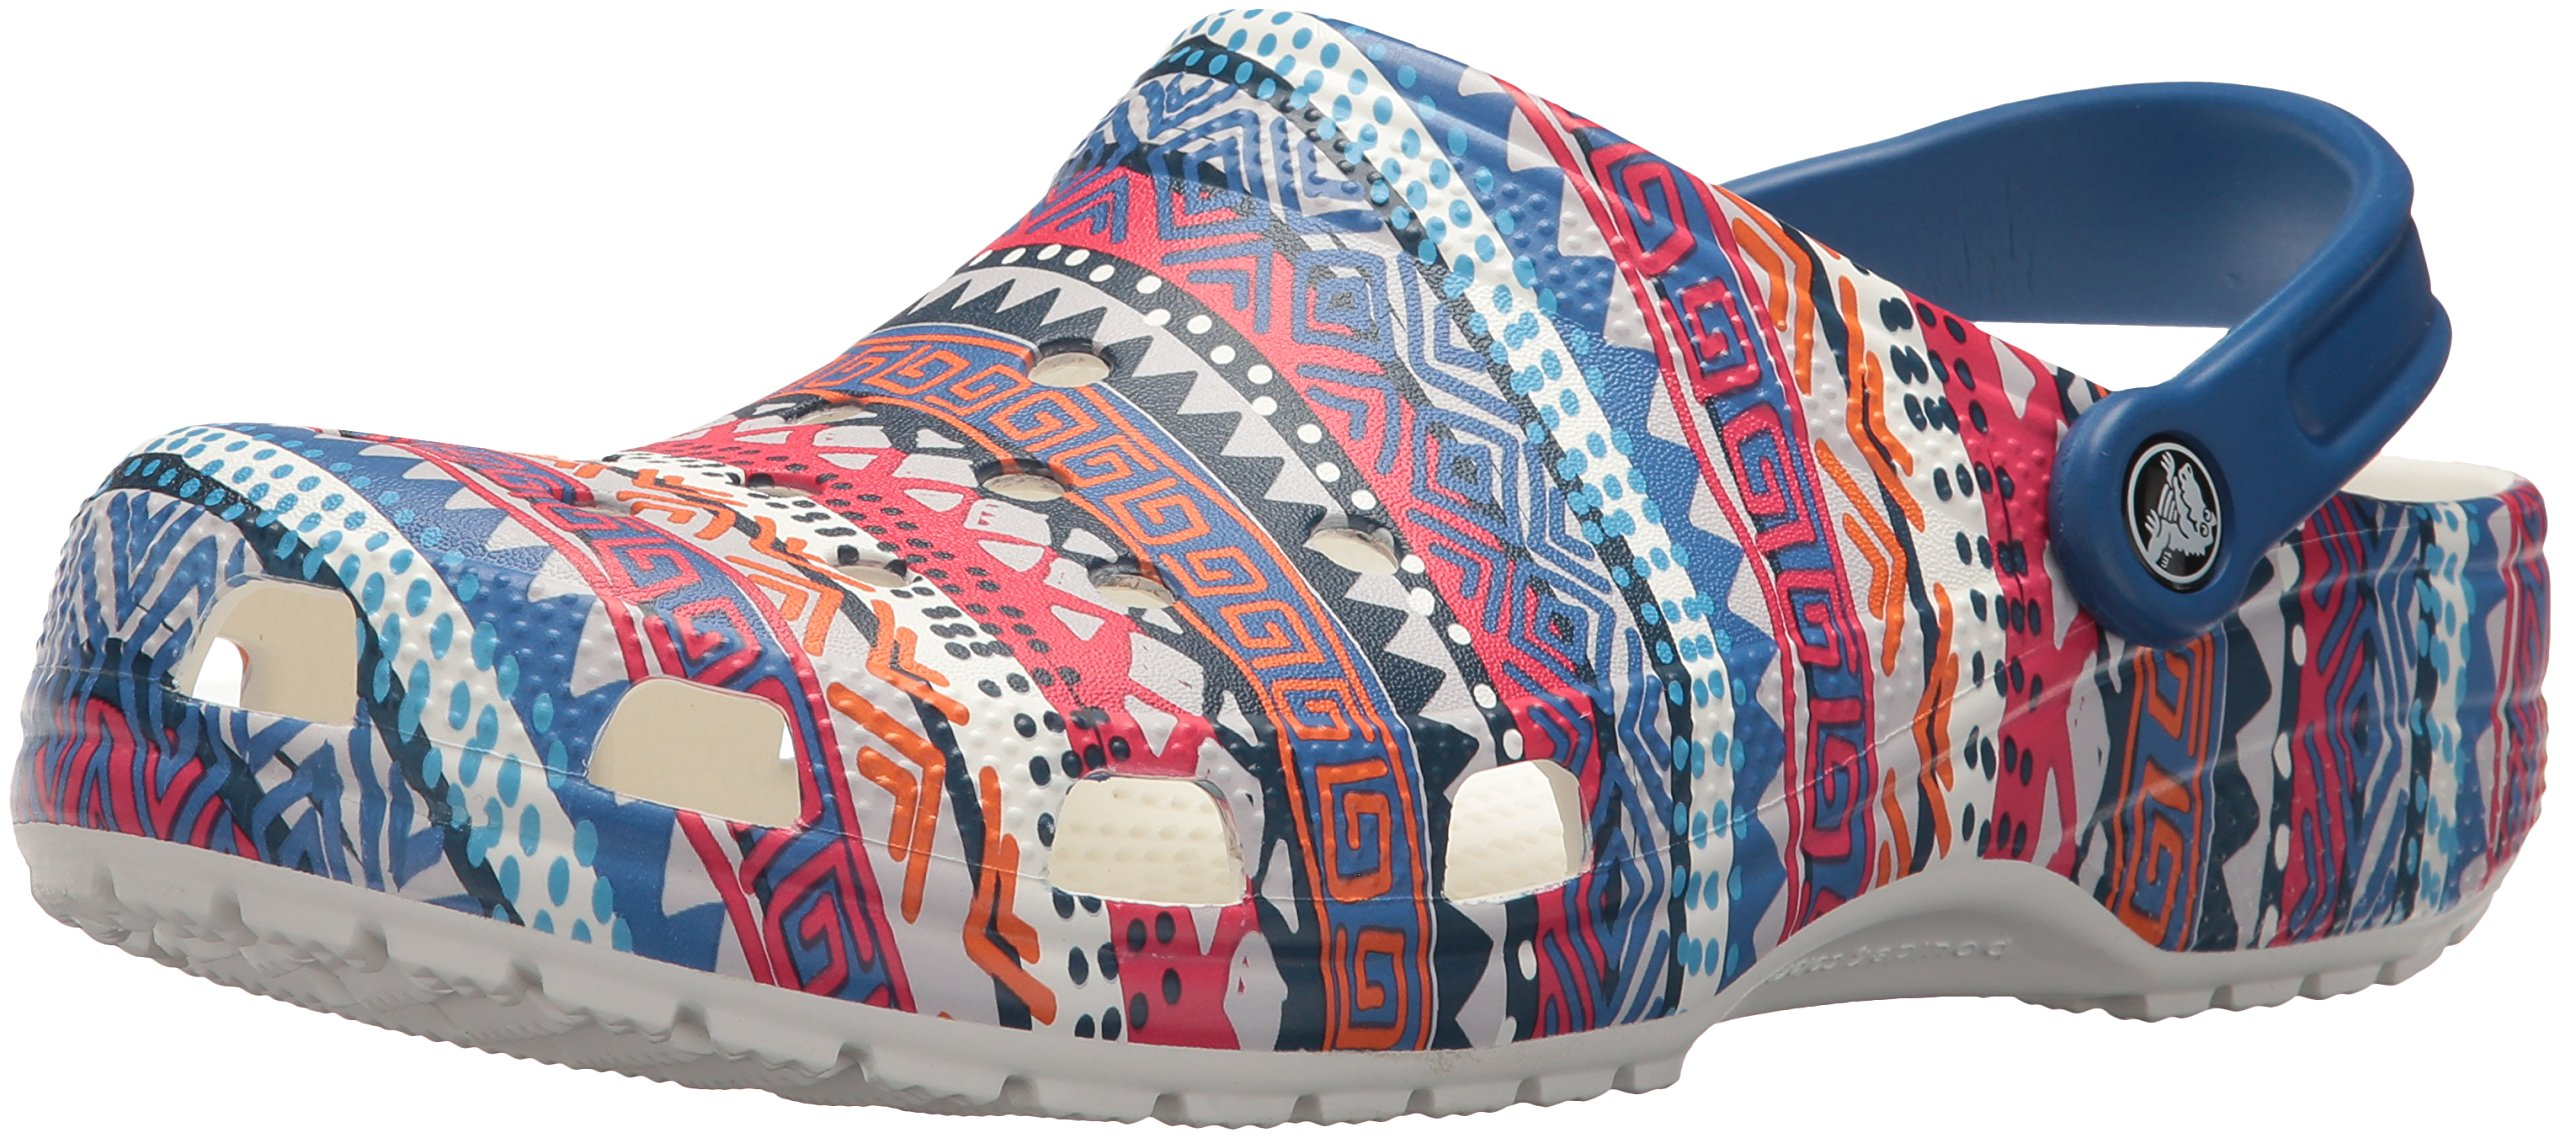 Crocs Unisex Classic Printed Clog Mule, Blue Jean/White, 8 US Men/10 US Women